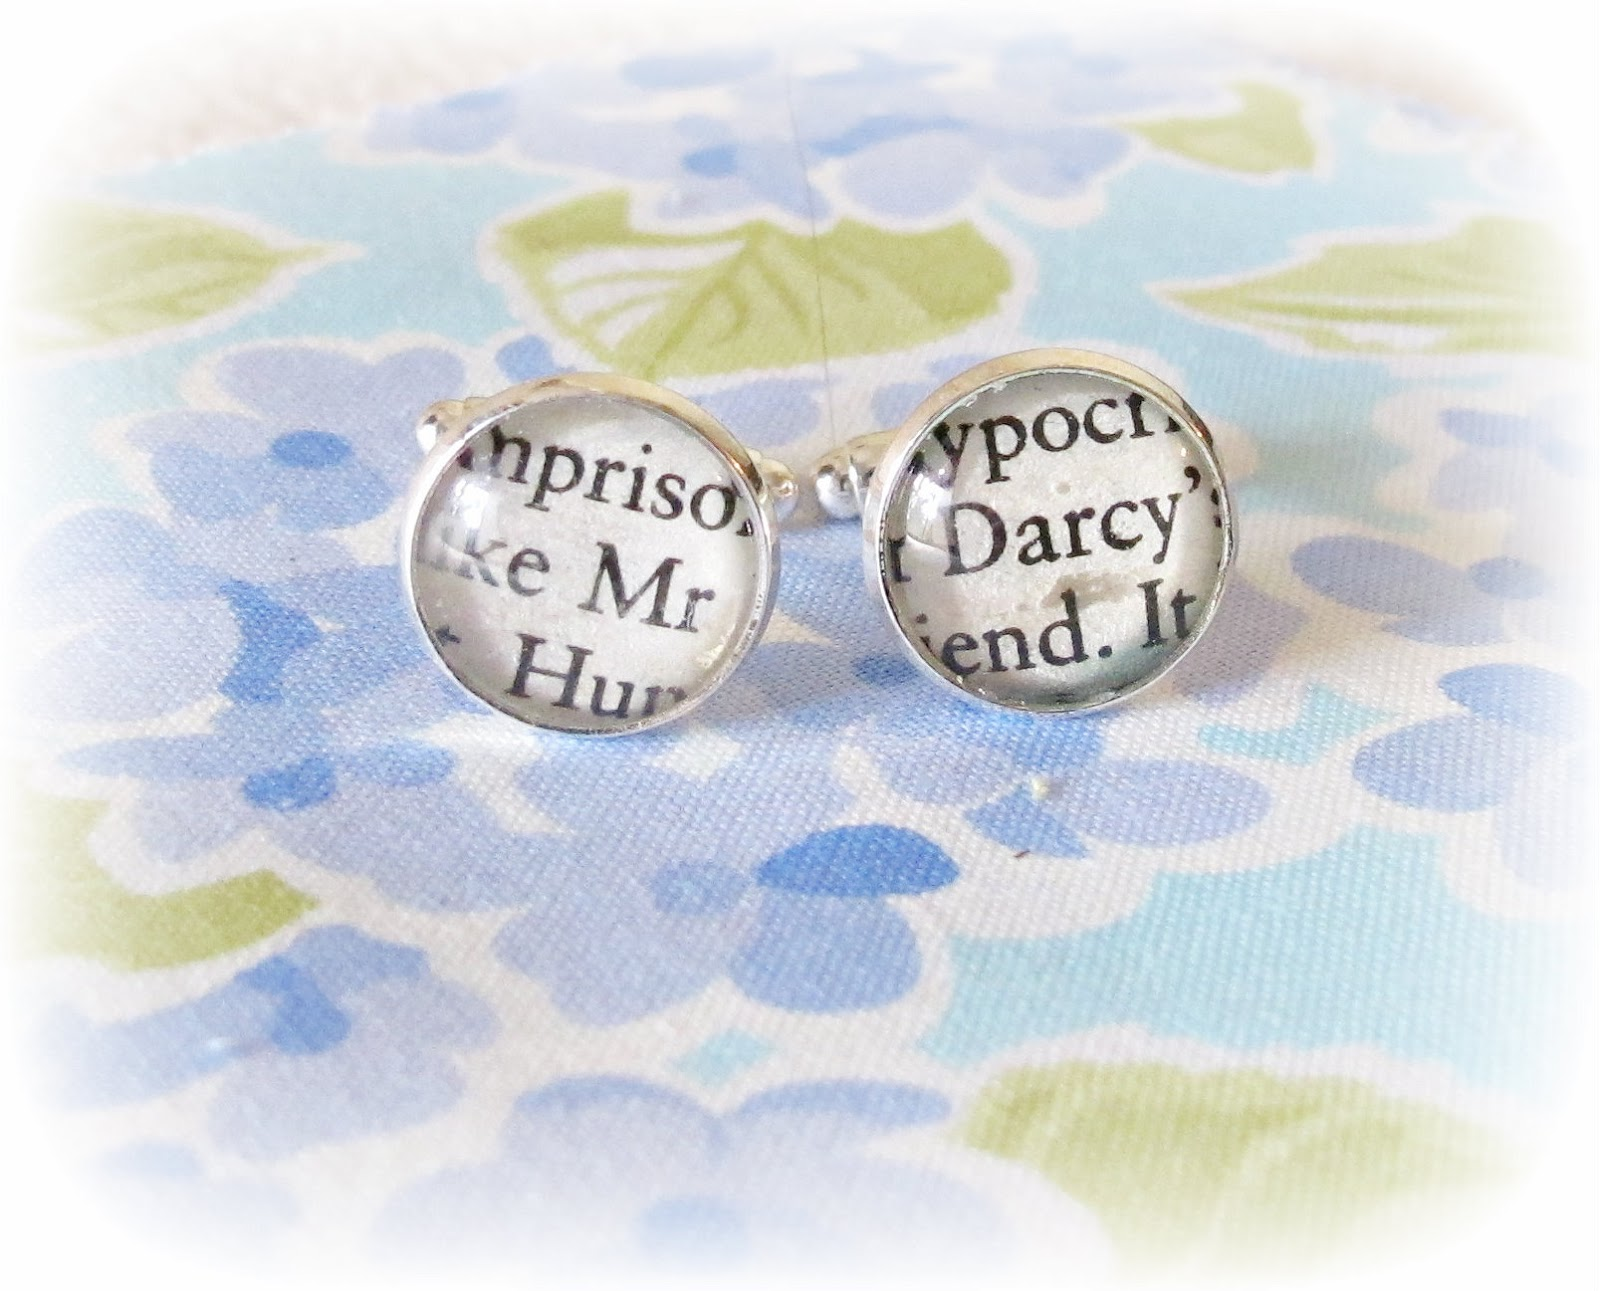 image mr Darcy cufflinks jane austen book text upcycled vintage two cheeky monkeys pride and prejudice